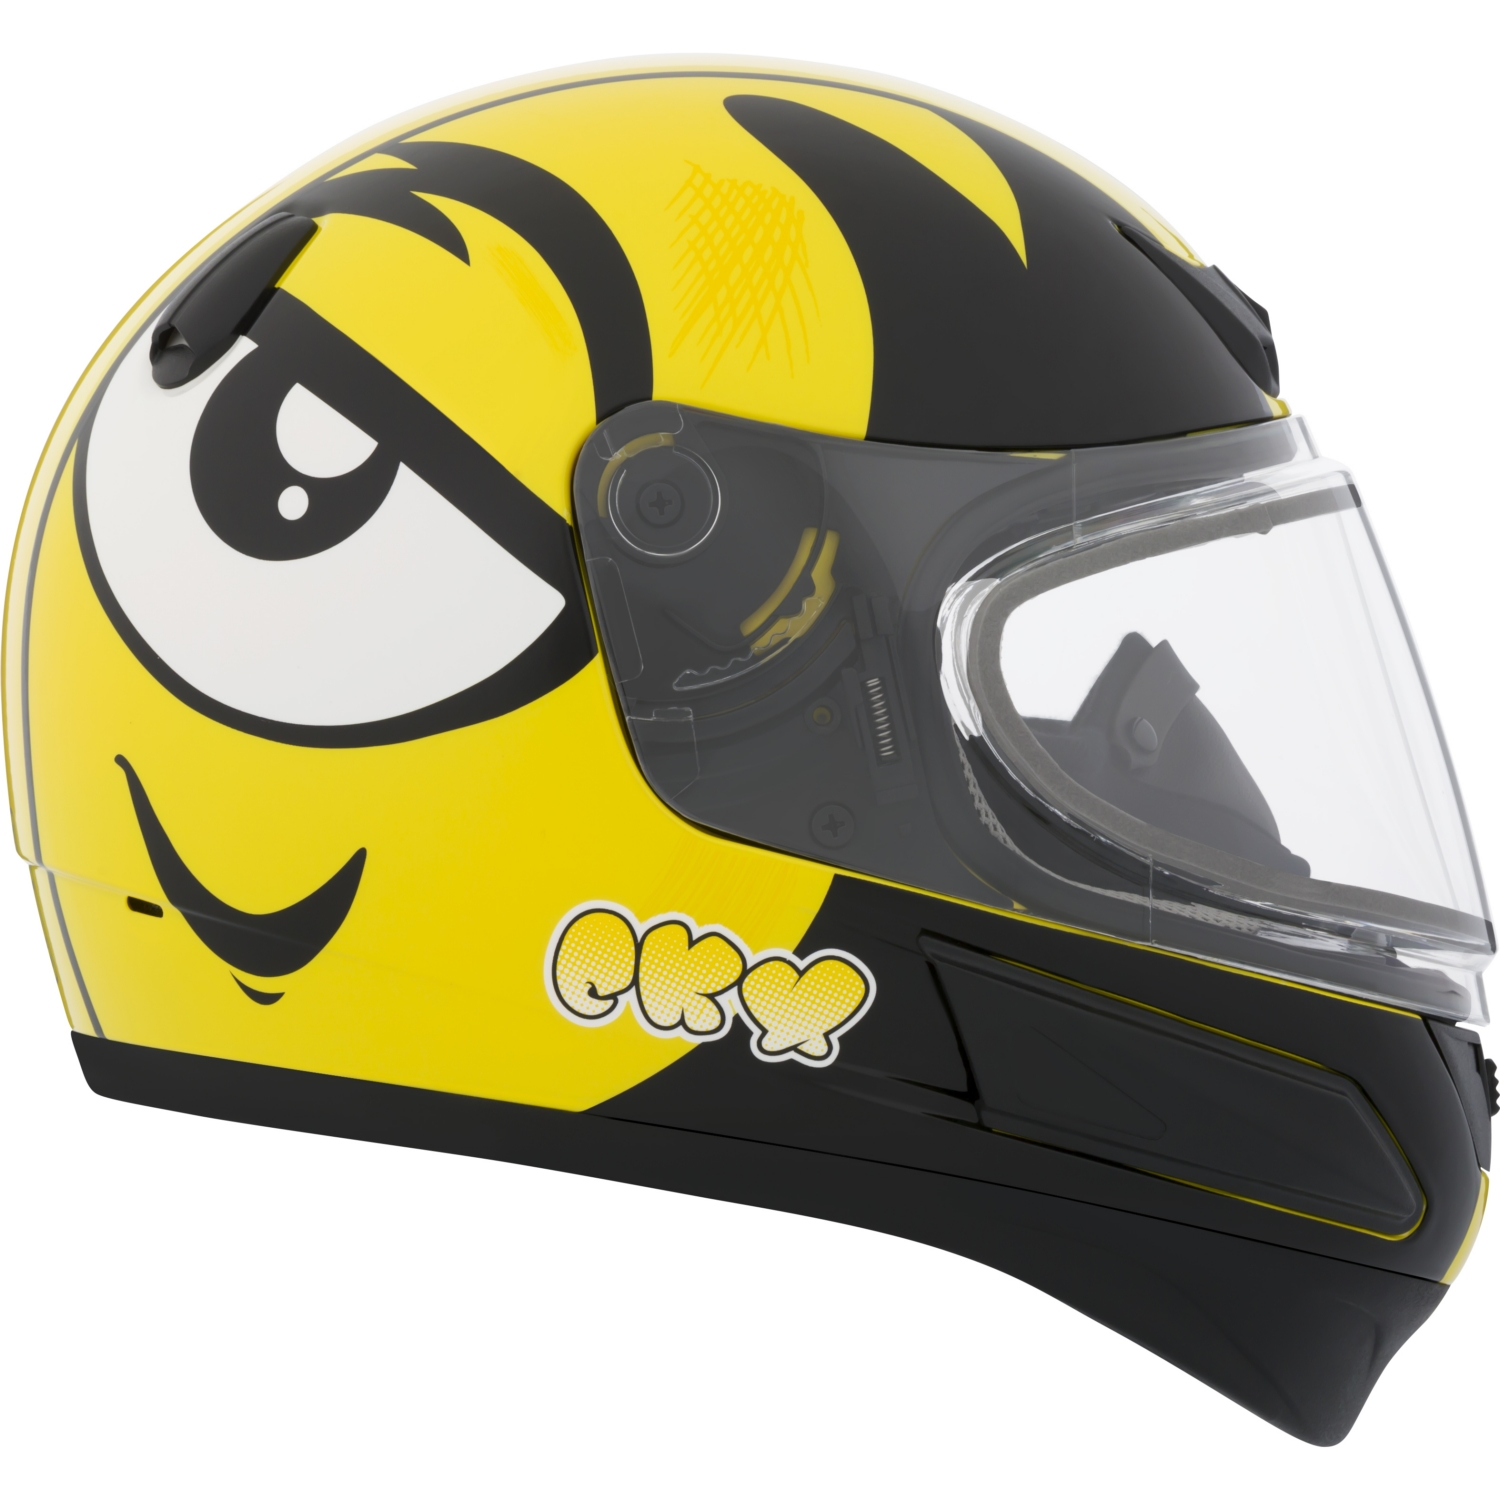 CKX Ink VGK1 Full-Face Helmet, Winter - Youth Double Shield